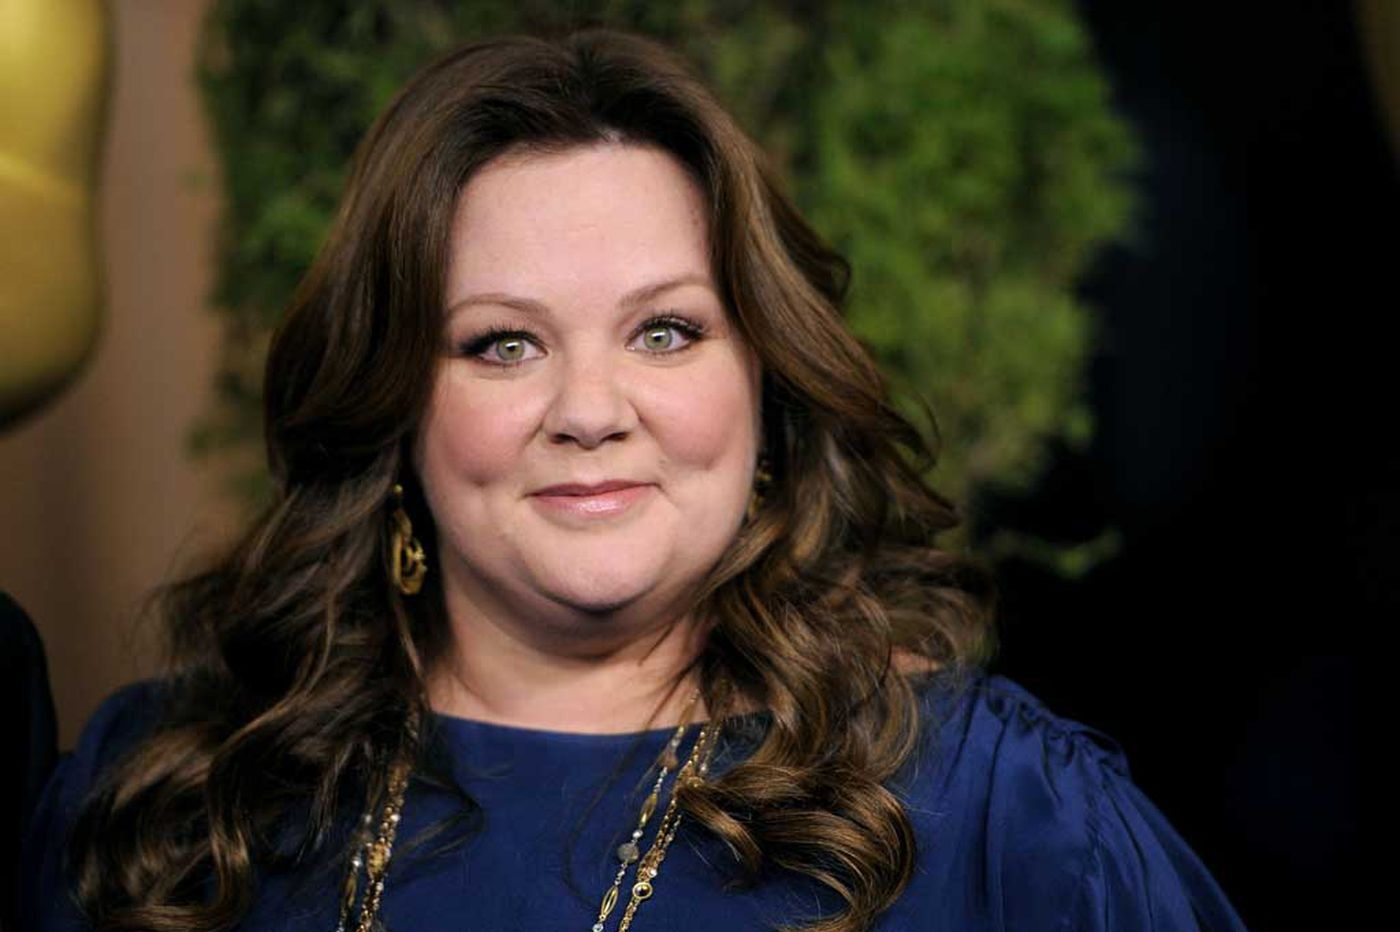 Actress Melissa McCarthy has an early bedtime. Should all adults?